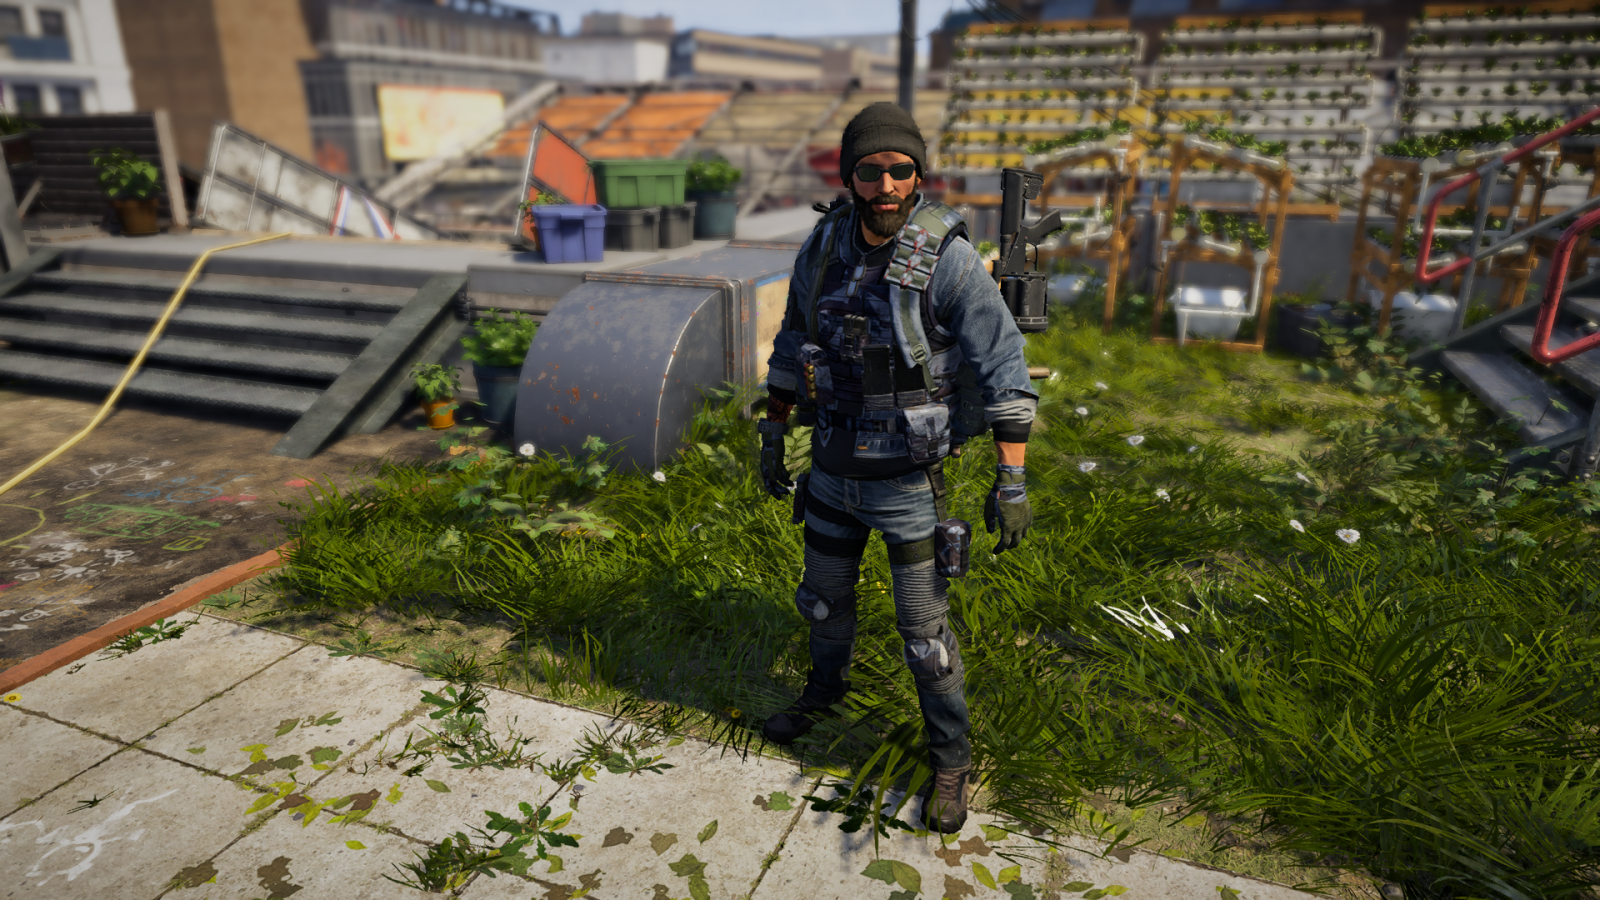 Tom Clancy's The Division 2_20190410_063445.png